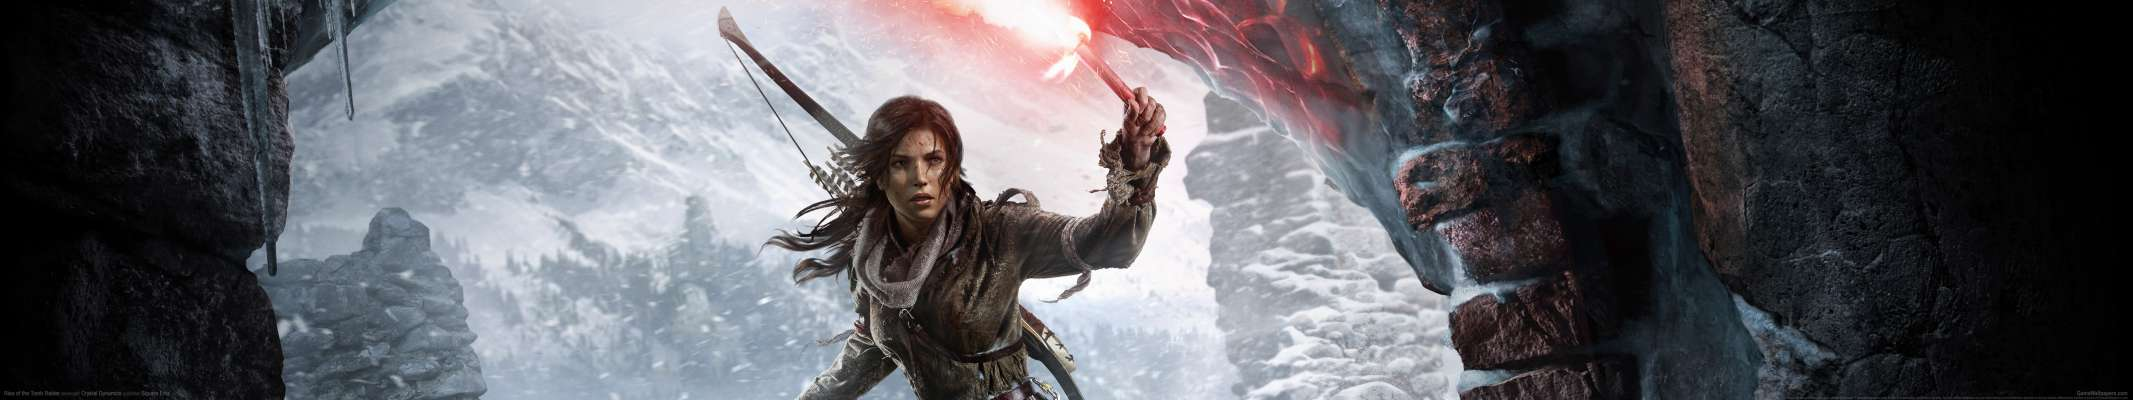 Rise of the Tomb Raider triple screen achtergrond